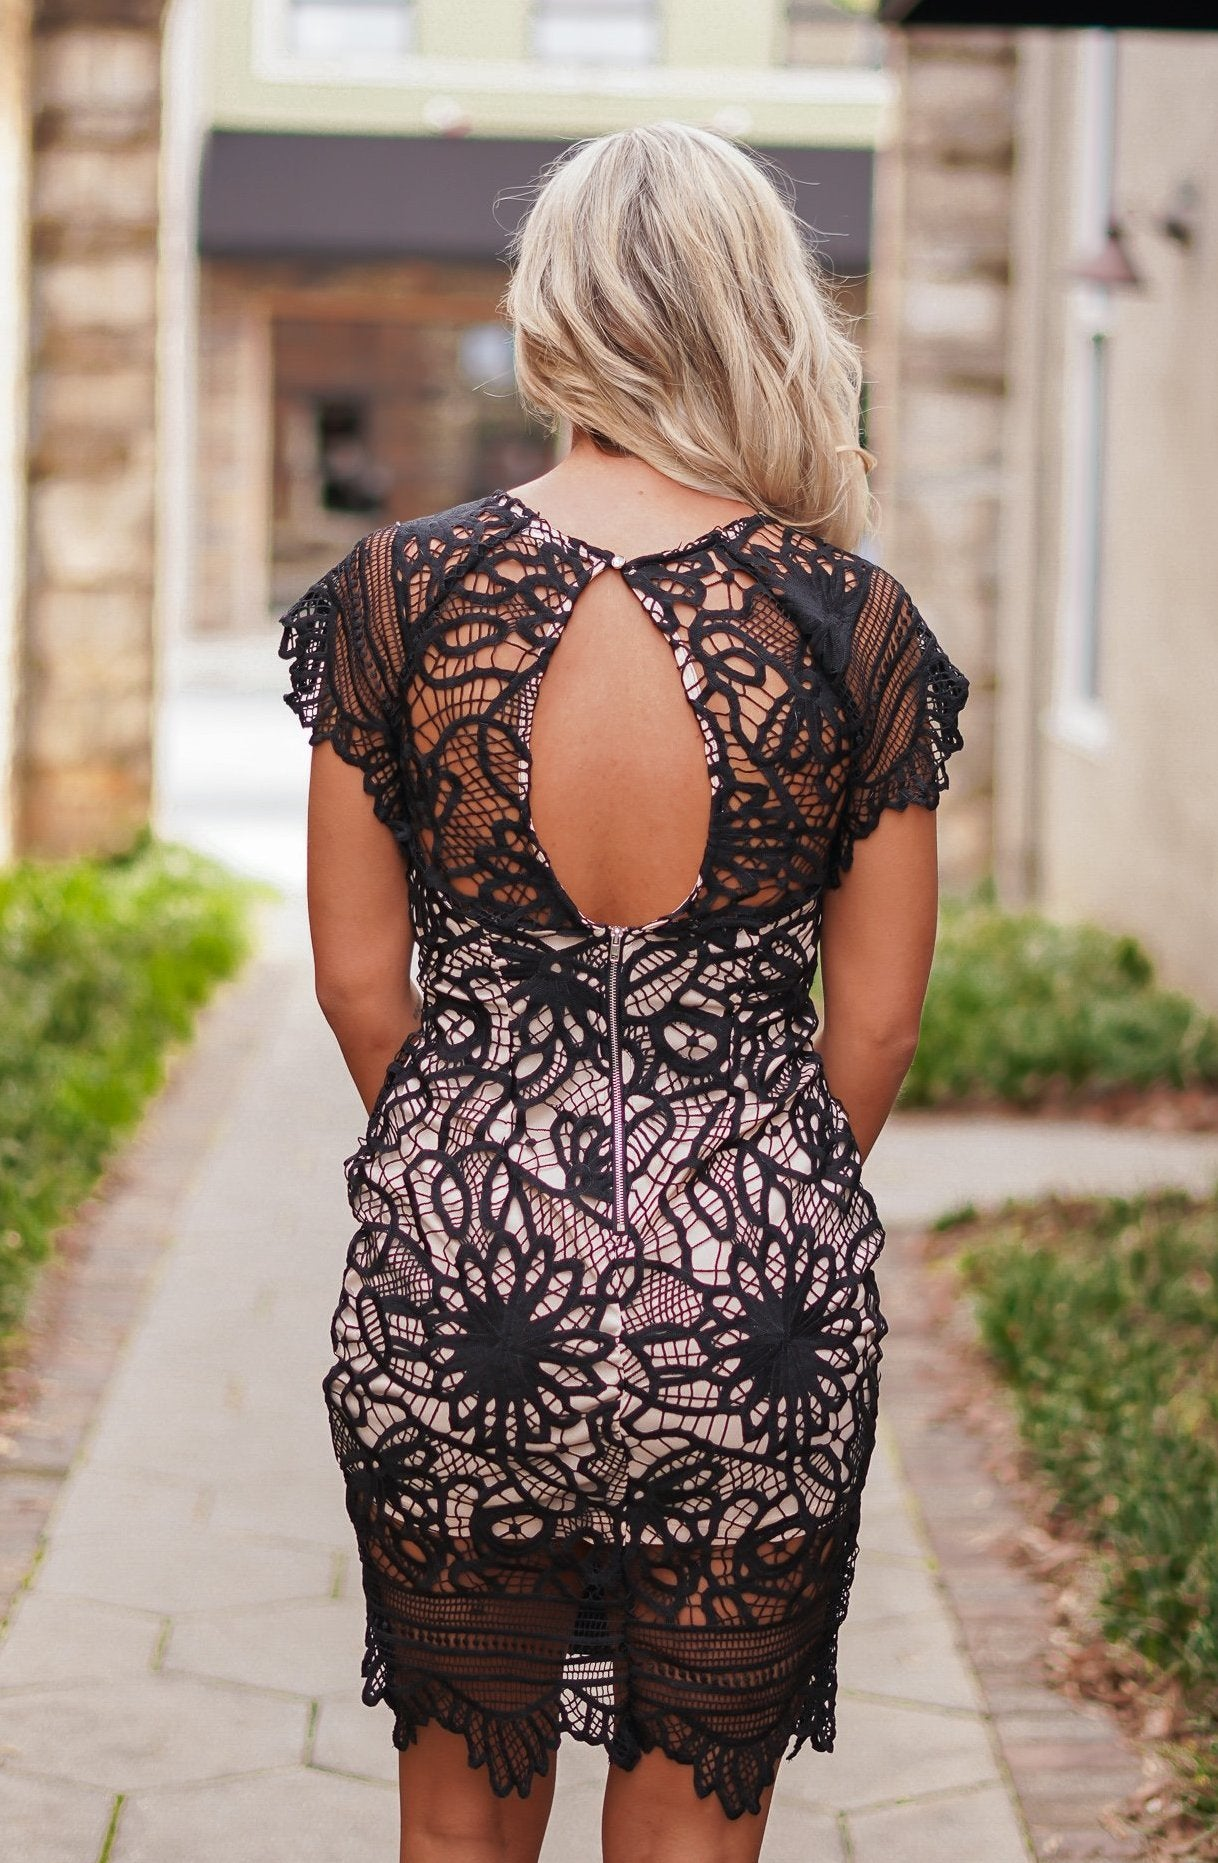 Fancy Seeing You Lace Dress